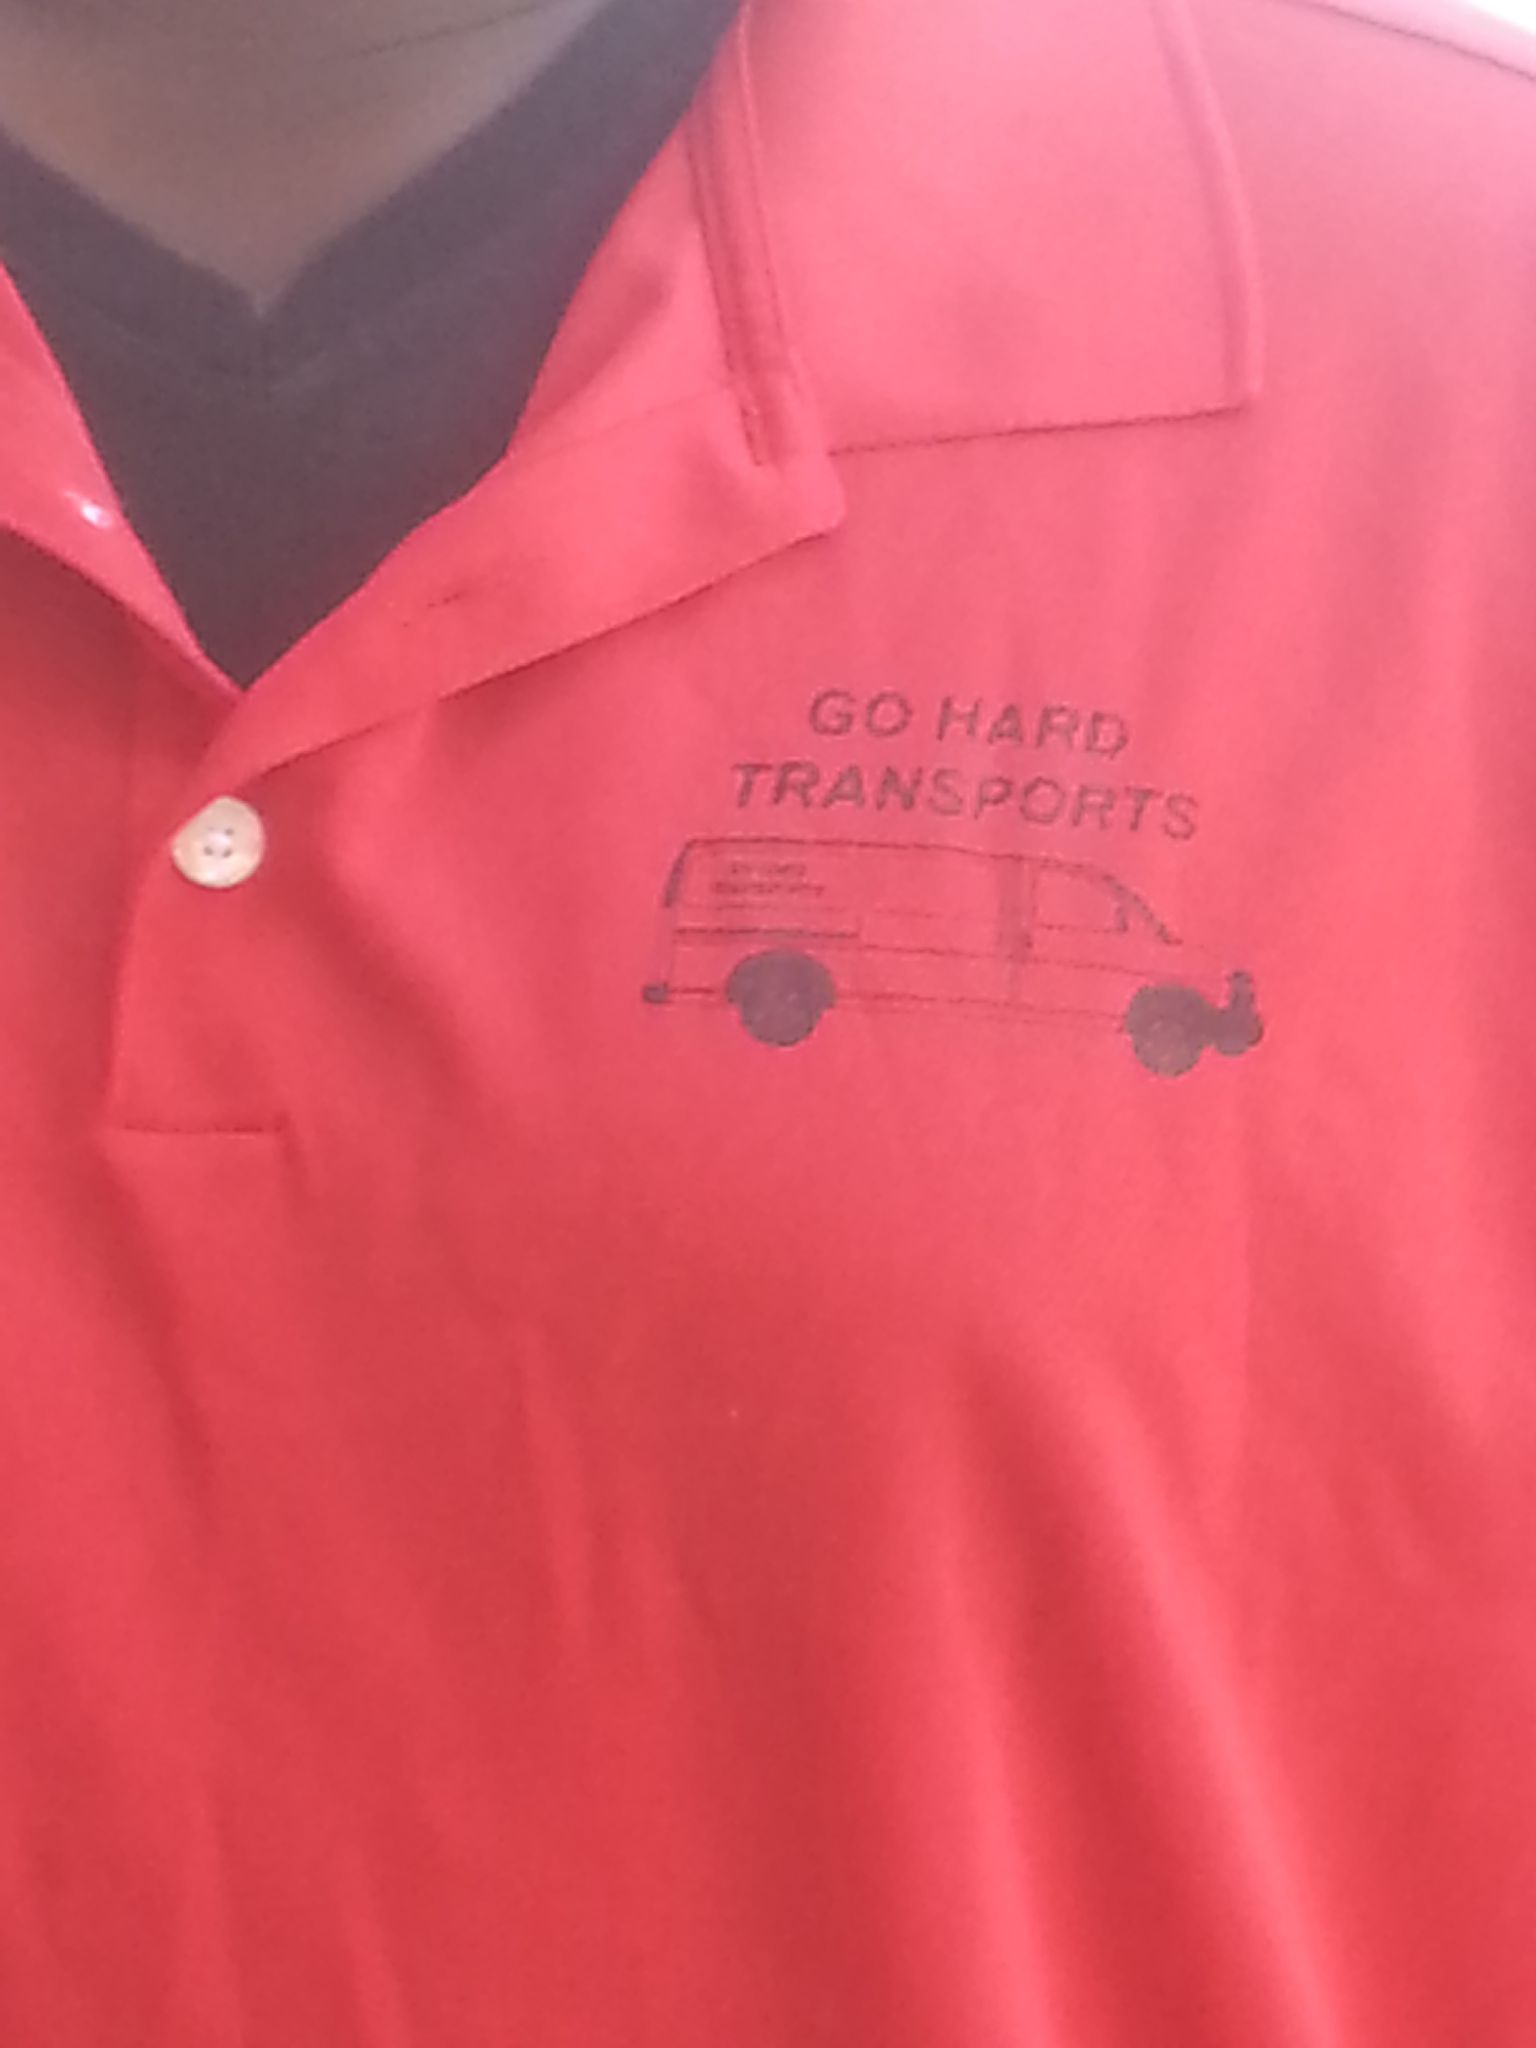 GO HARD TRANSPORTS